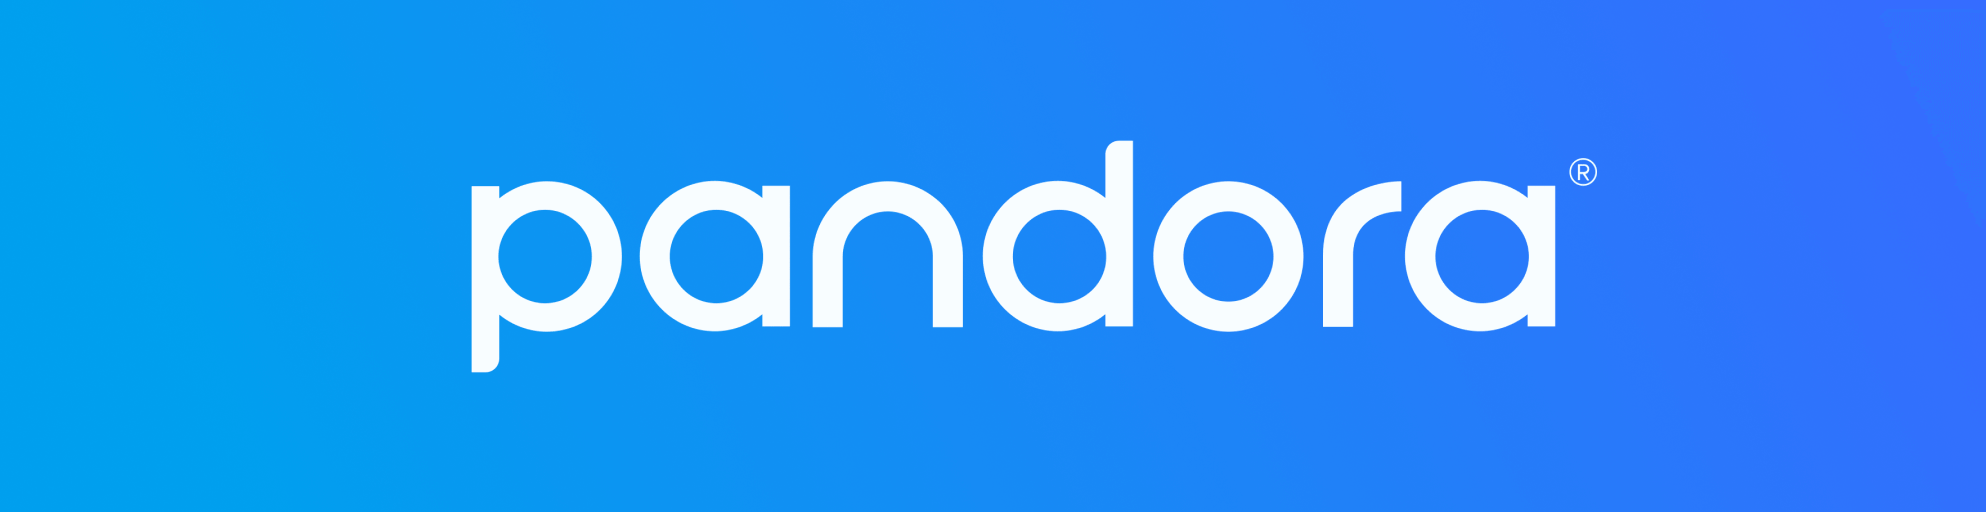 How to Build a Music App Like Pandora: Complete Guide from Exploration to Launch